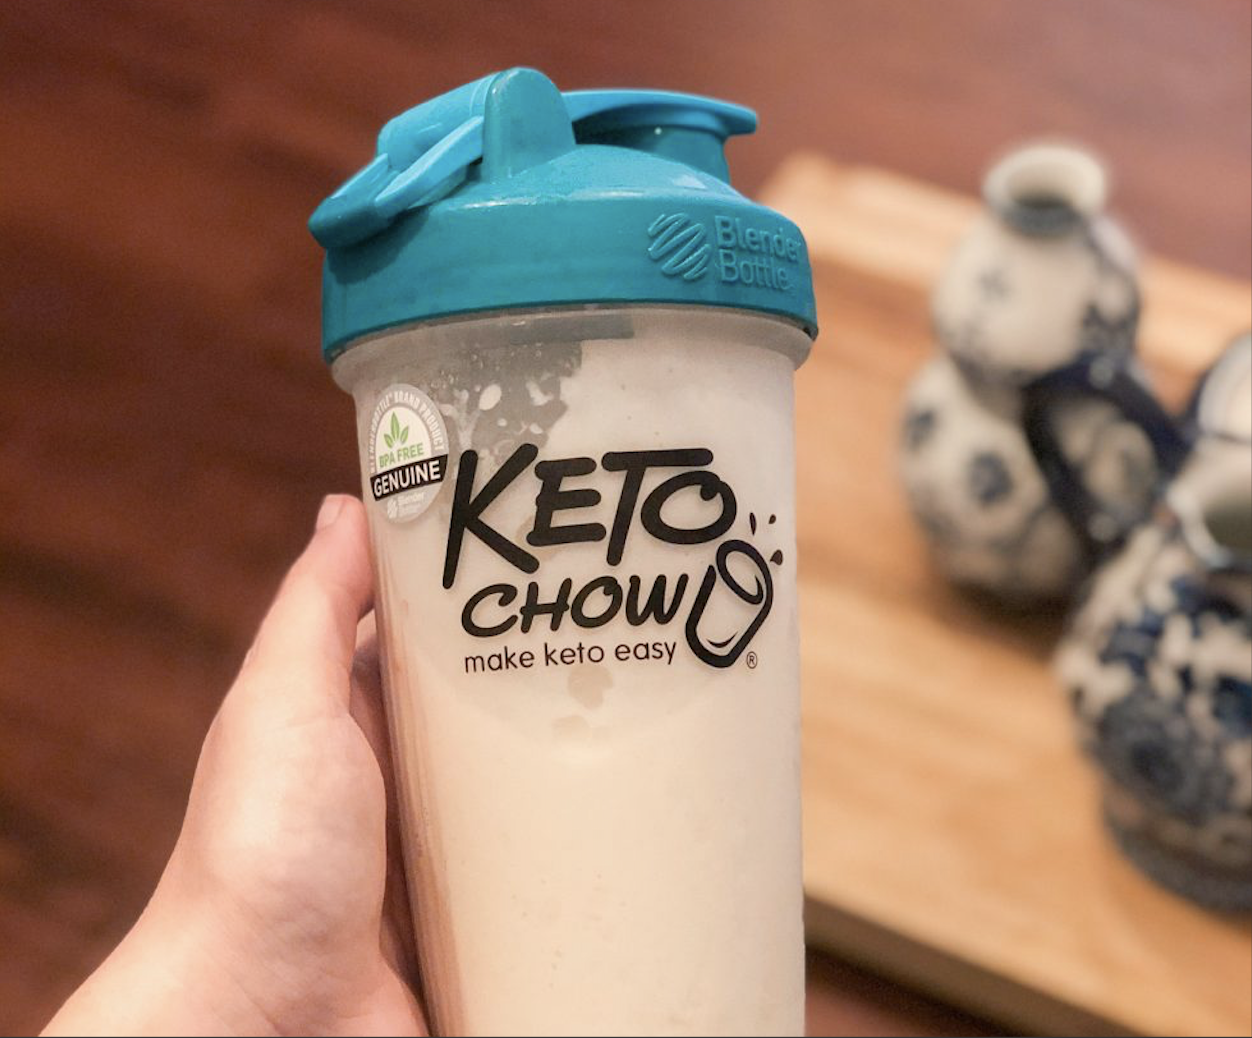 Keto Chow: Best Keto Meal Replacement Shake? 1